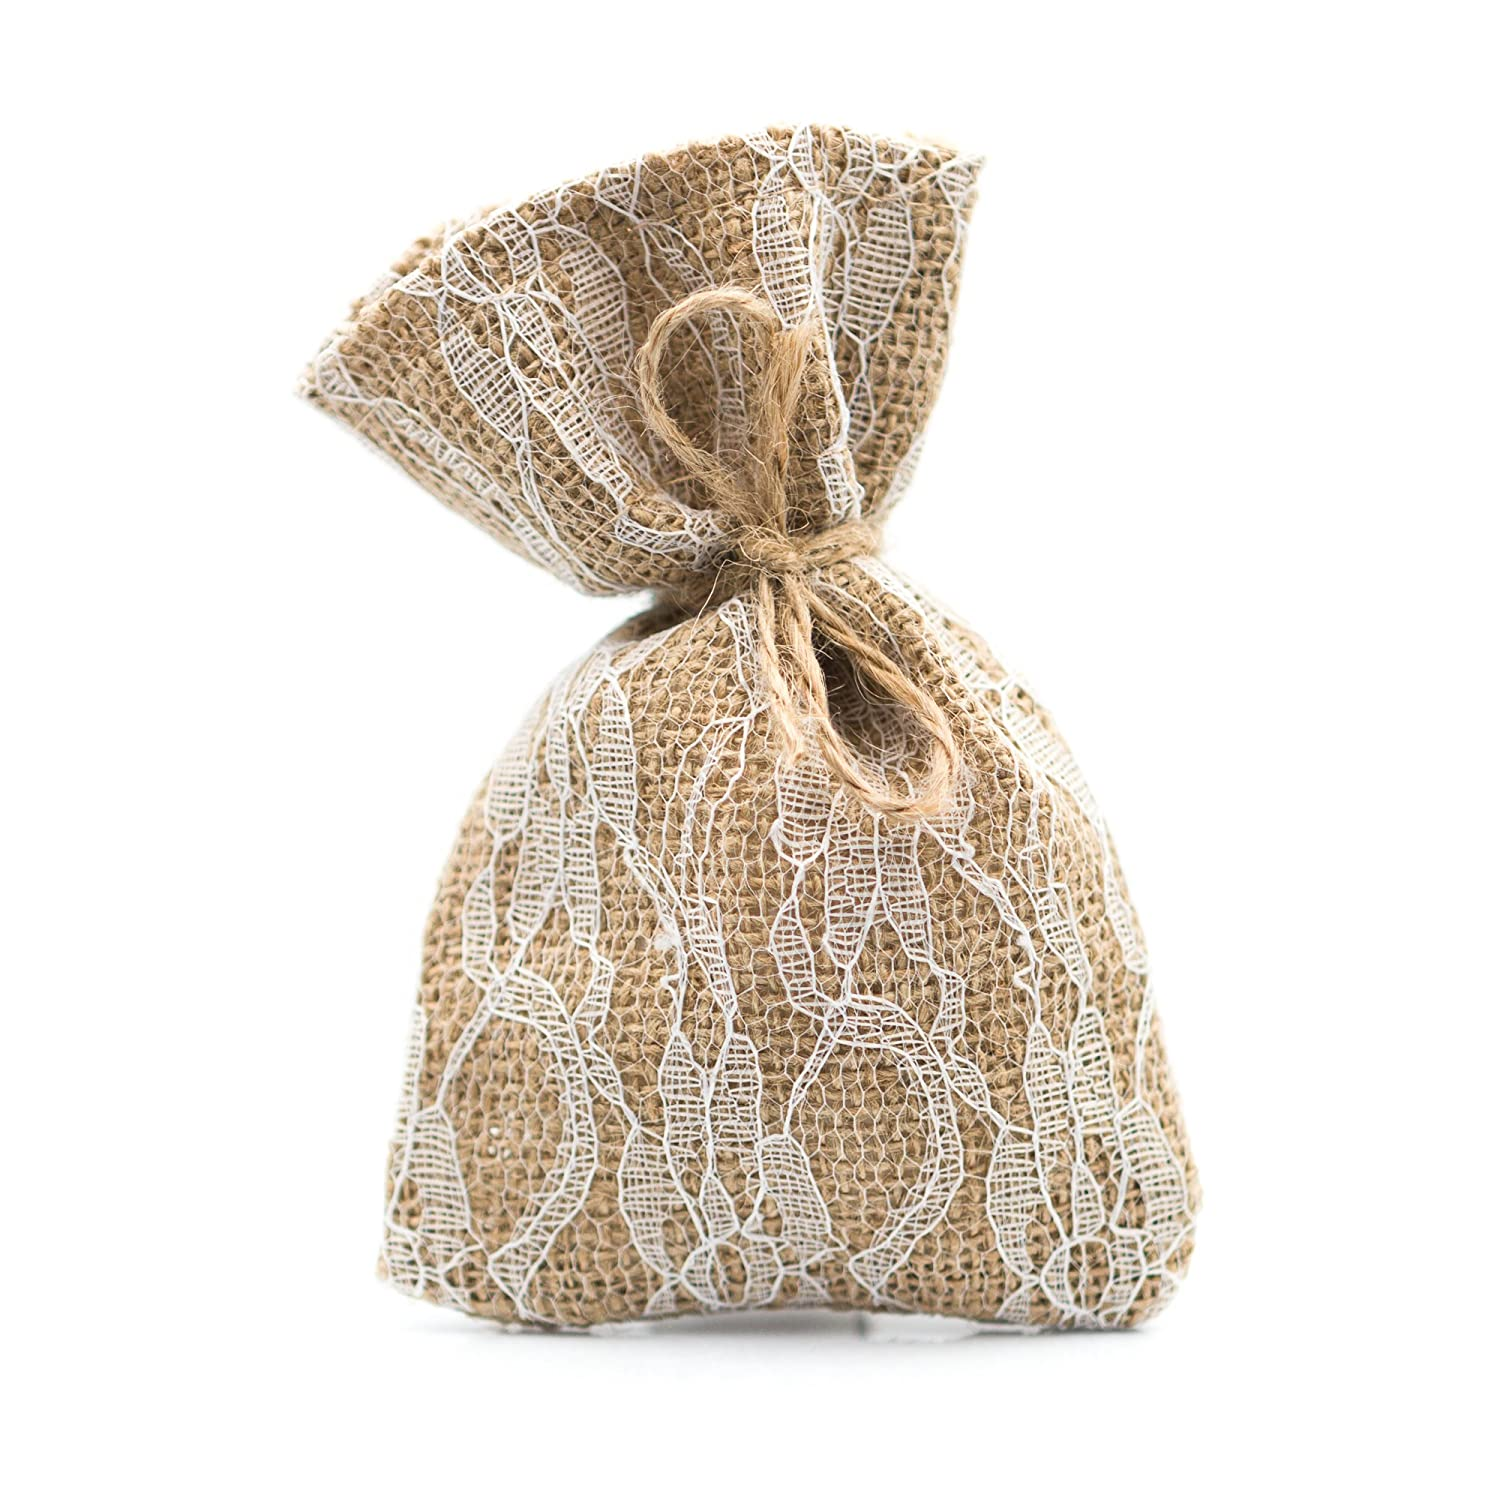 Amazon.com: Fiesta de Boda Favor de Bolsas, 25: Health ...